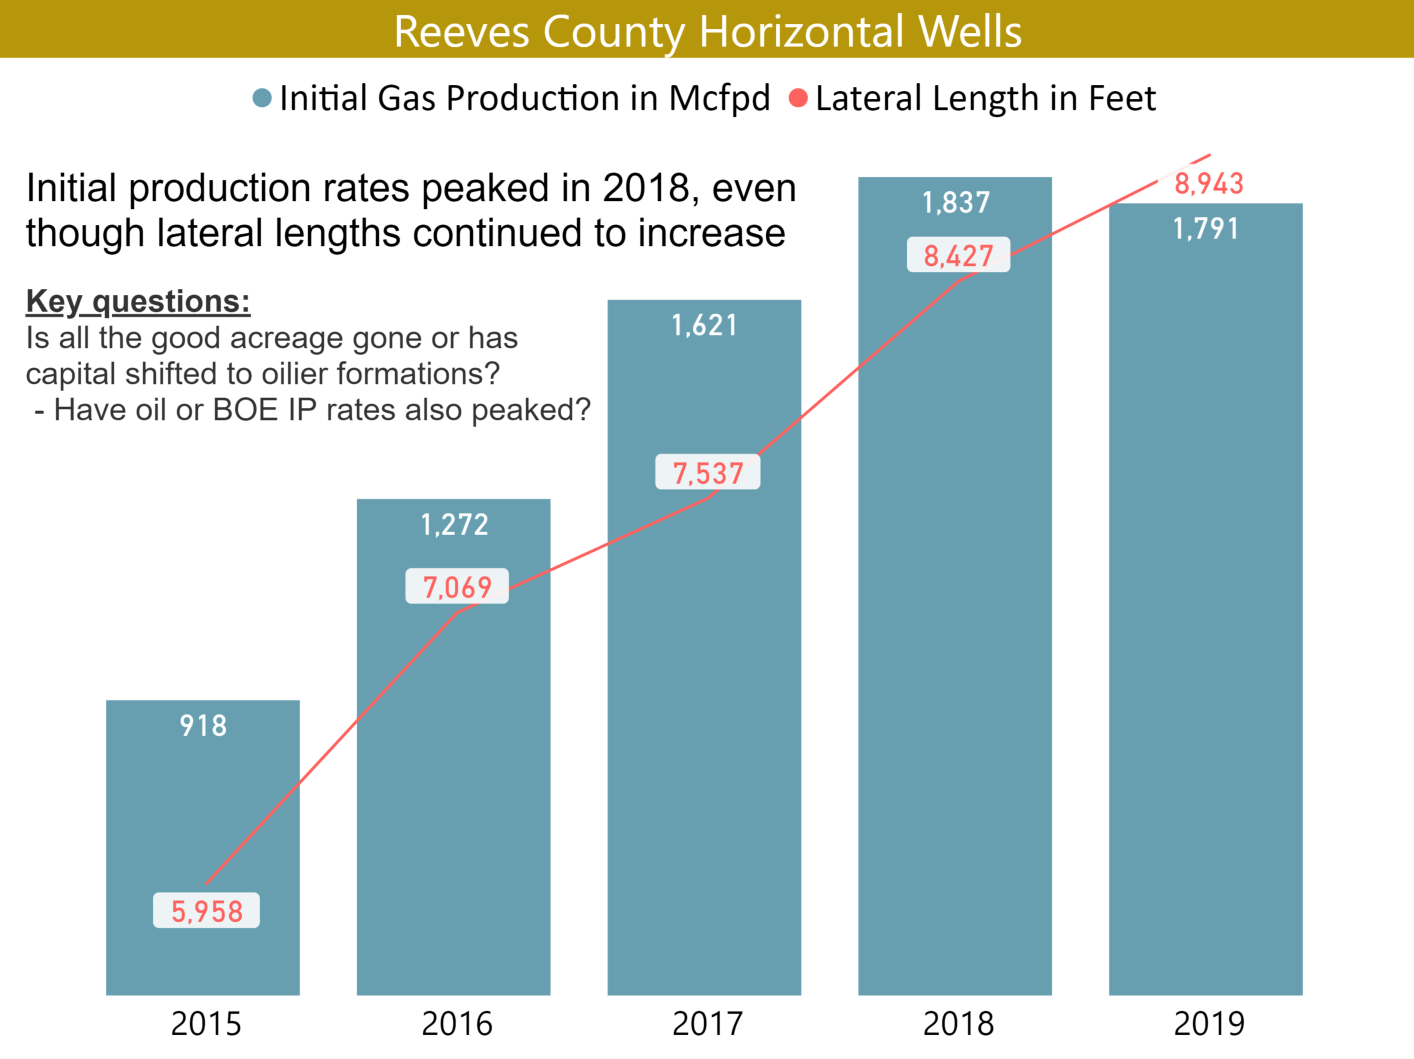 Initial production rates peaked in 2018 while lateral lengths kept increasing